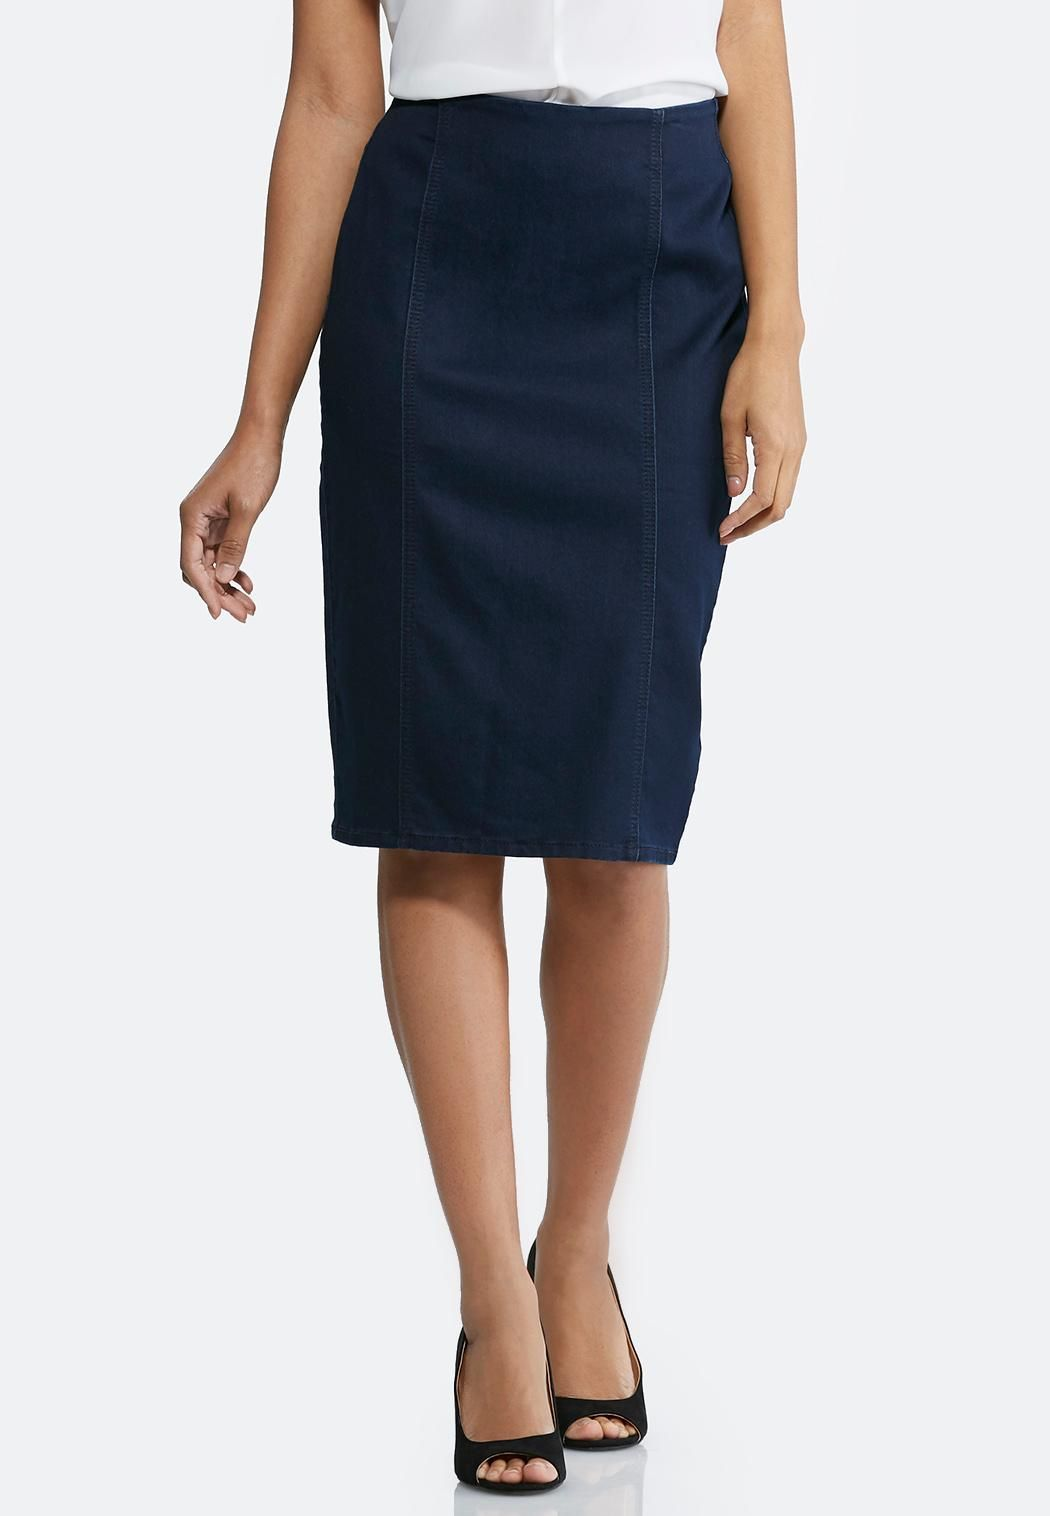 95a05d8c39 Pull-On Denim Pencil Skirt Skirts Cato Fashions | Haven | Fashion ...